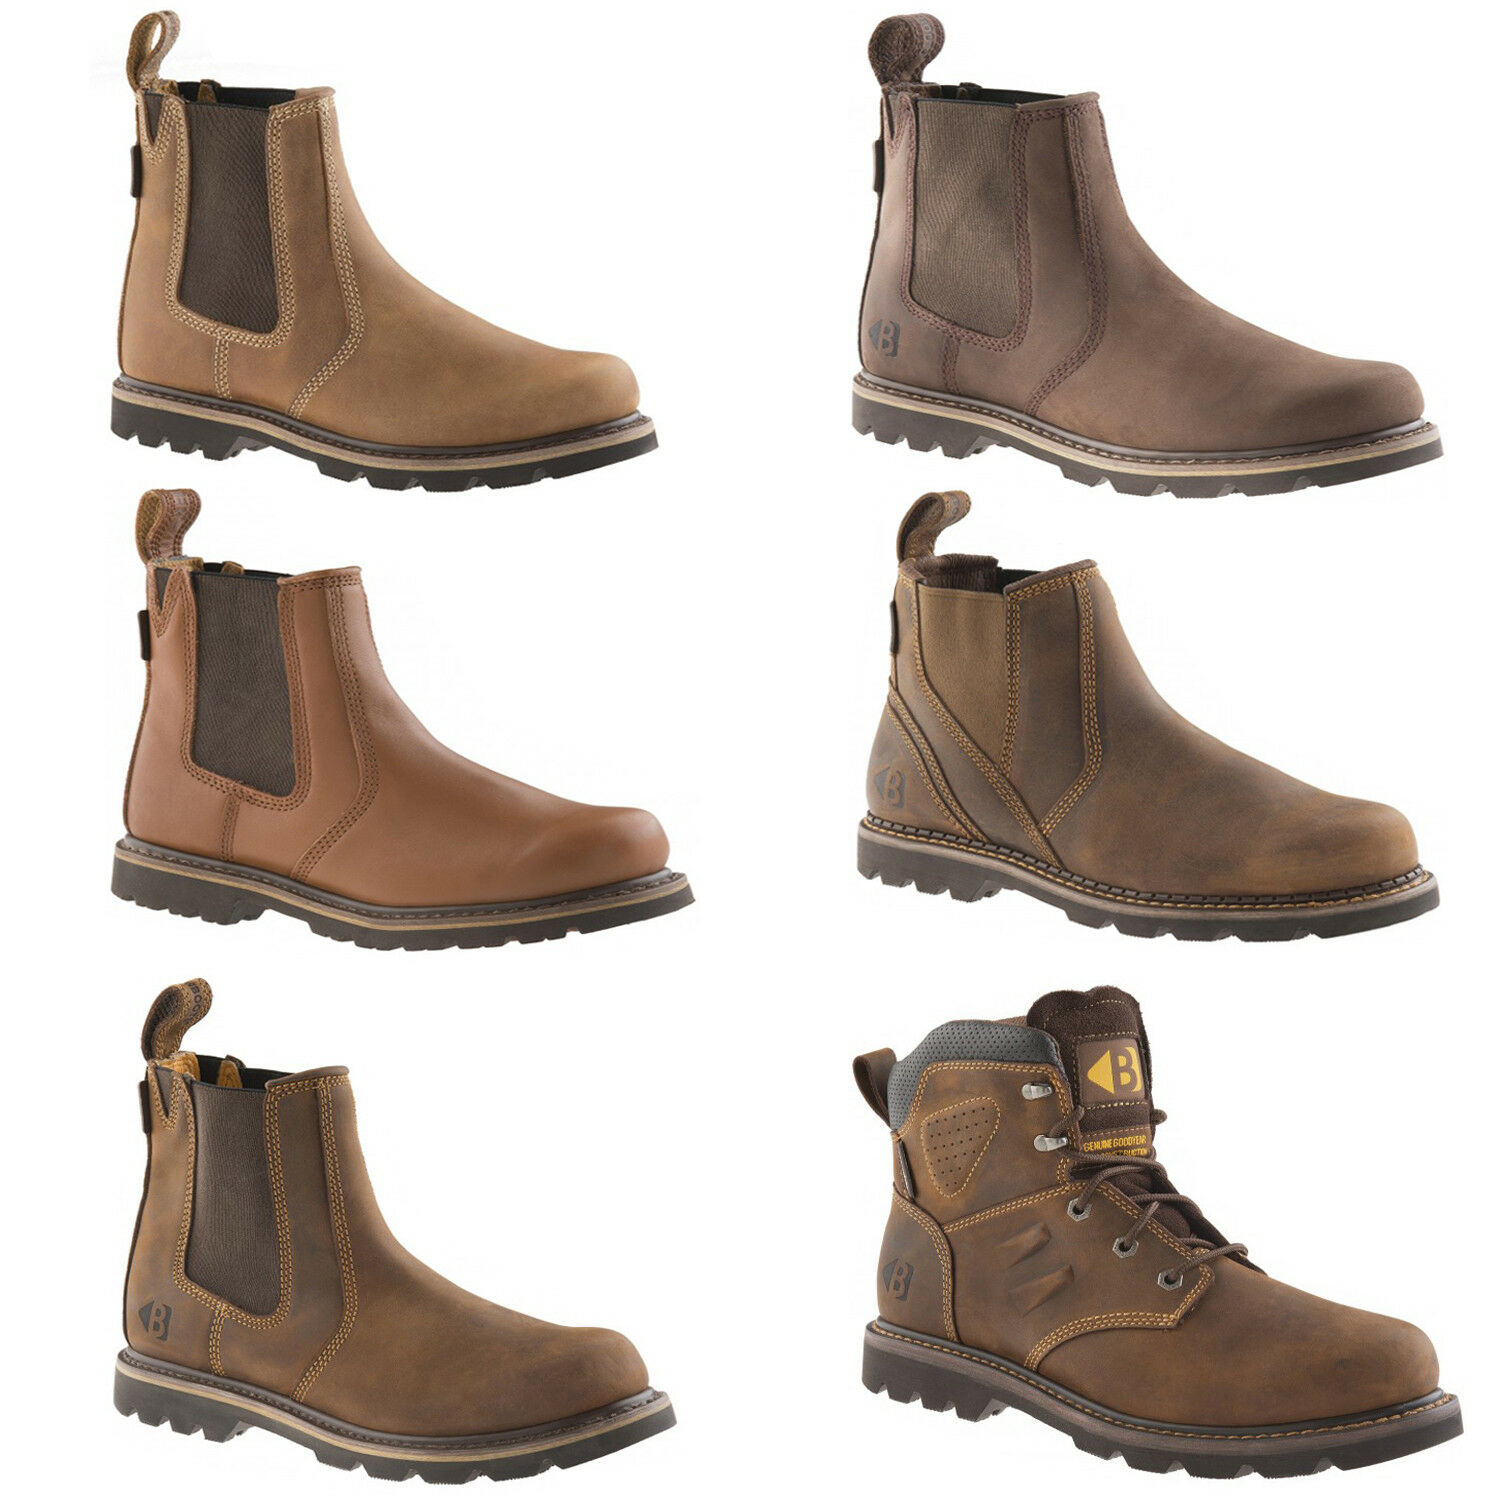 Buckler Non-Safety and Work botas (Various Talla and Non-Safety Styles) Hombres Zapatos ad29db